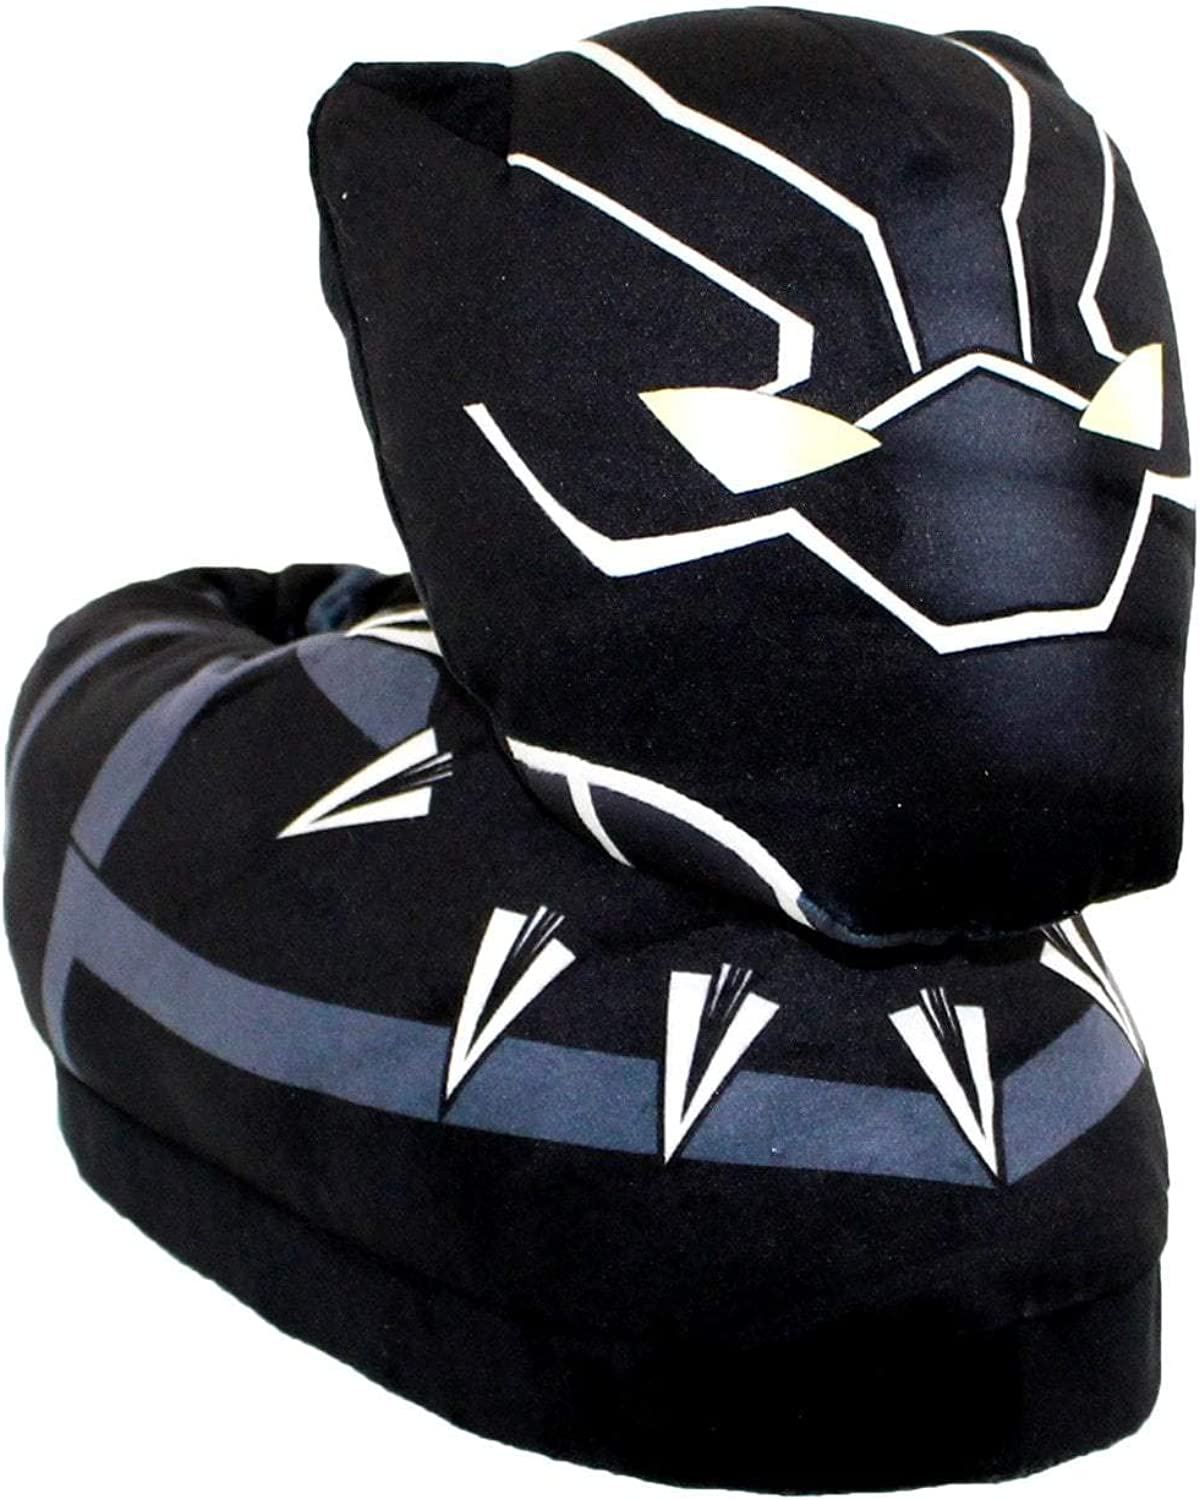 Marvel Officially Max 66% OFF Licensed Slippers - Translated Happy an Feet Womens Mens